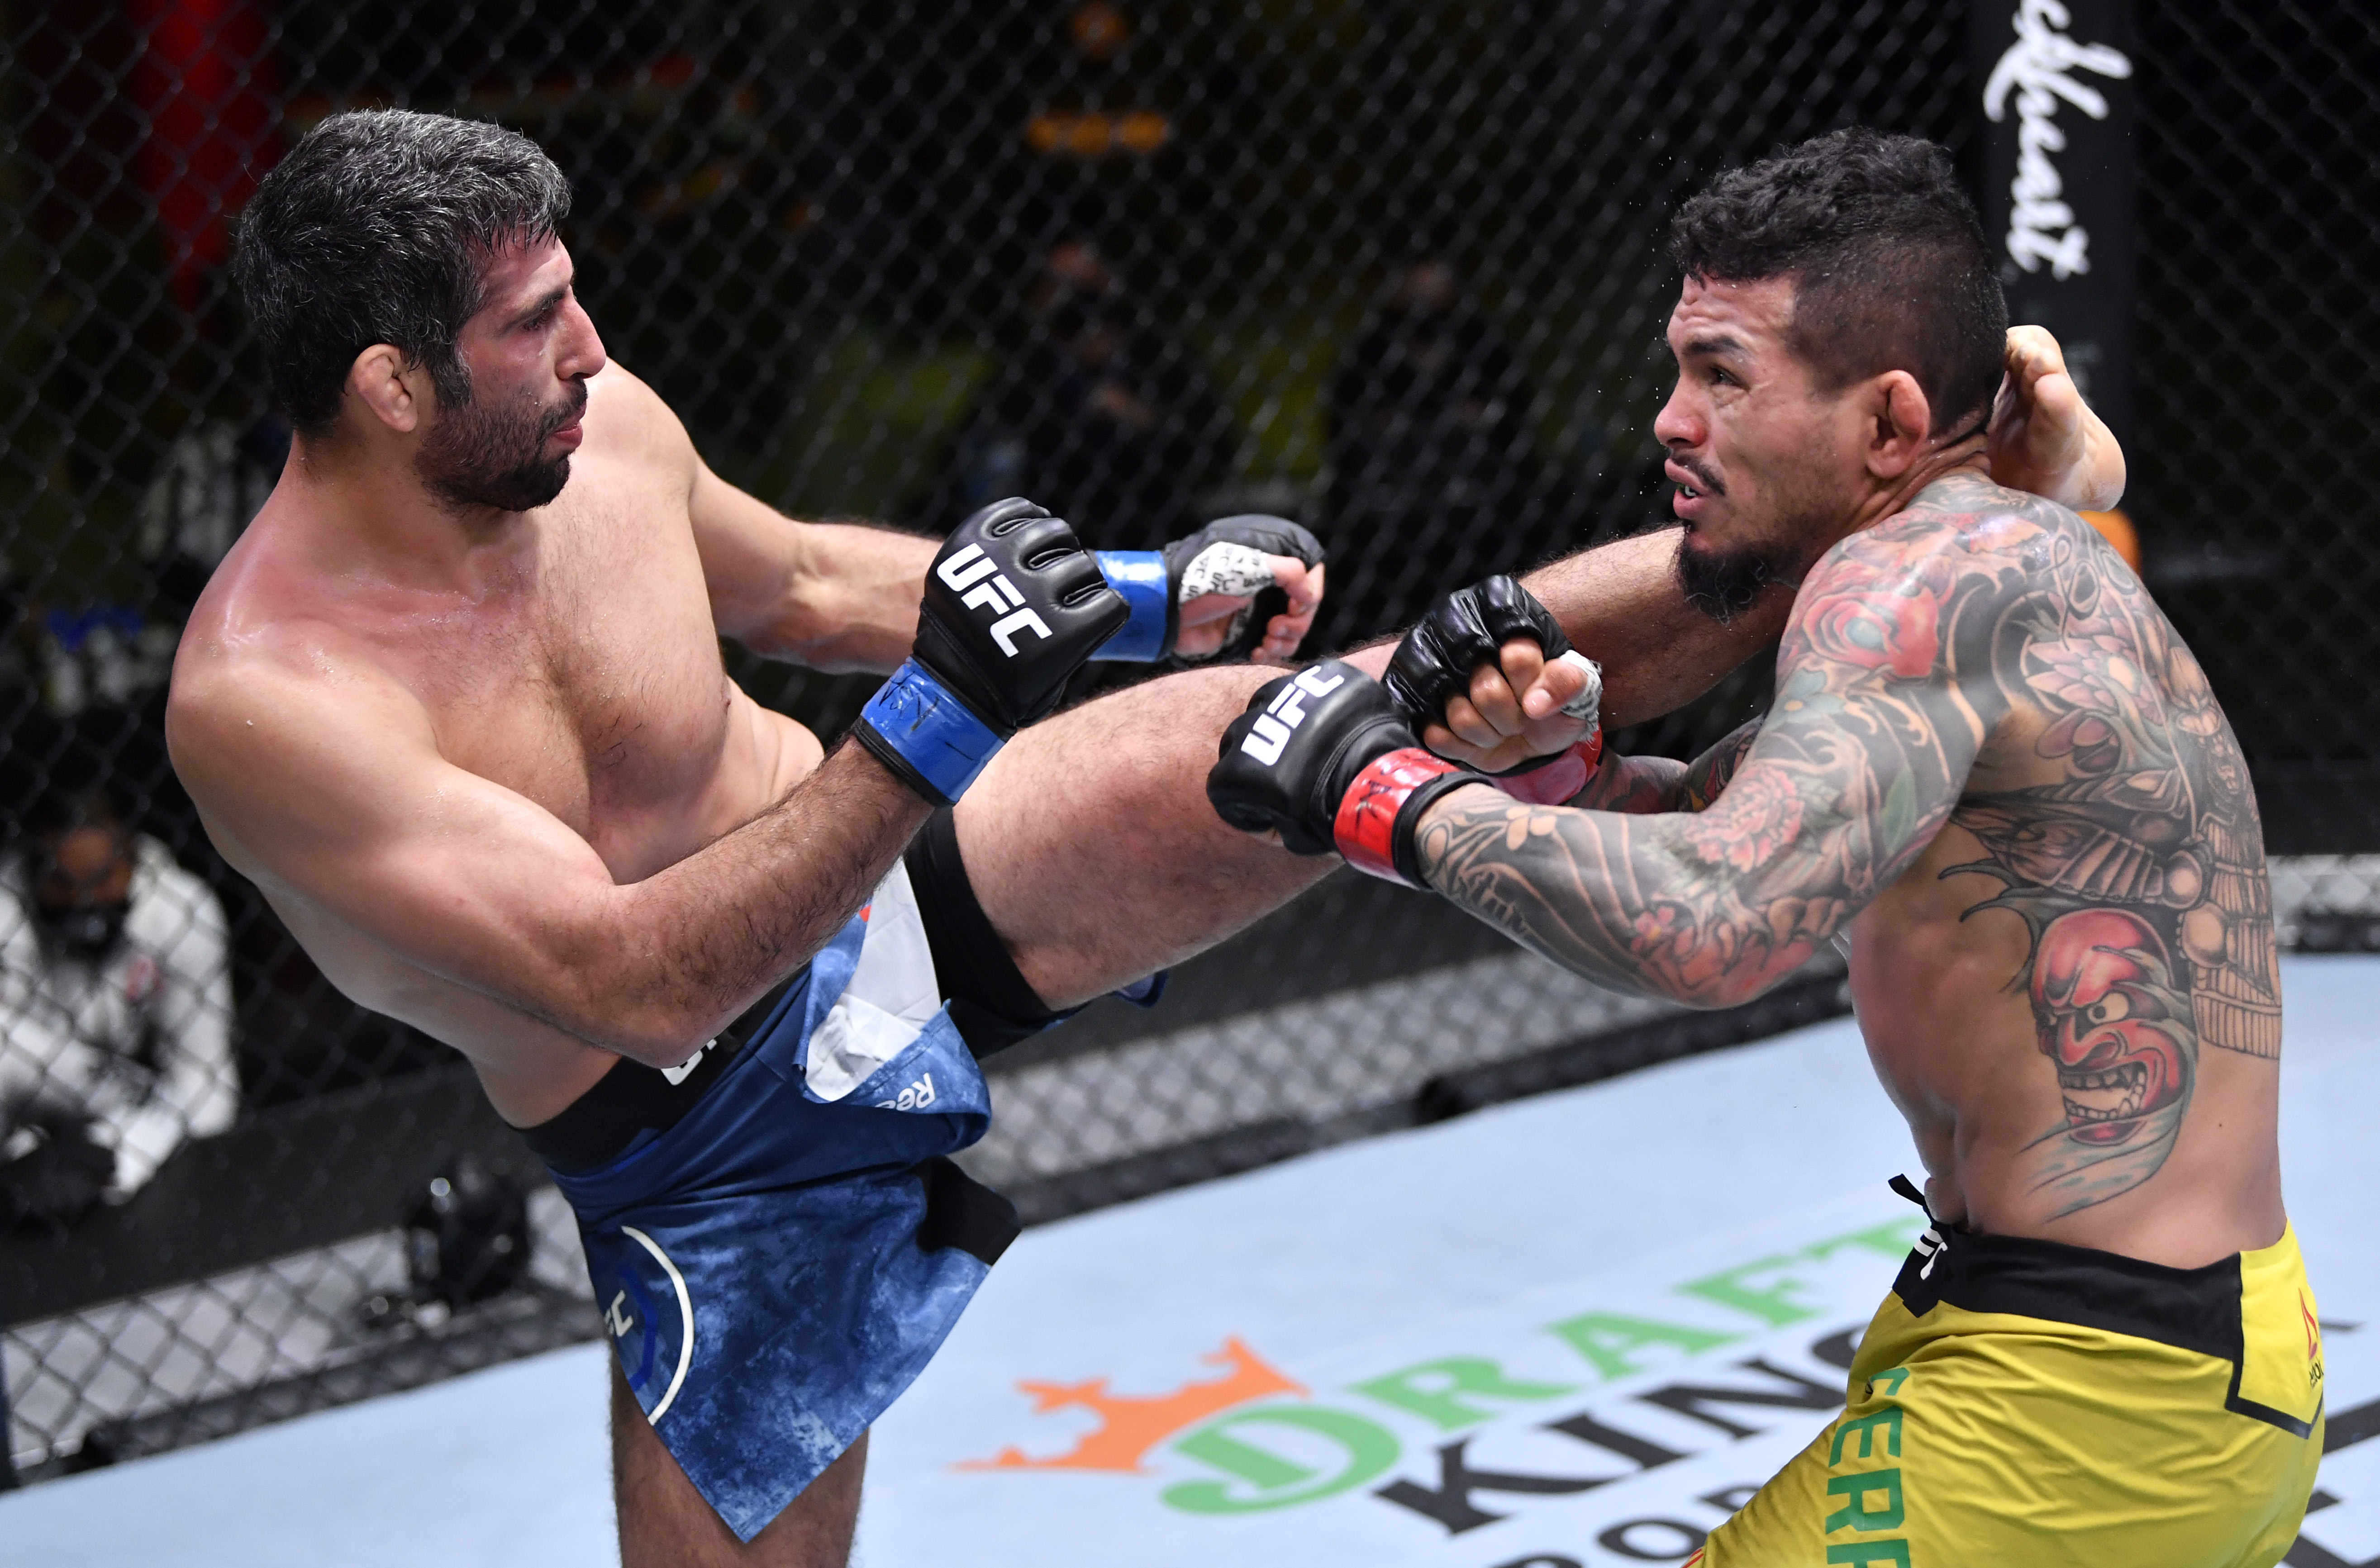 LAS VEGAS, NEVADA - FEBRUARY 06: In this handout image provided by UFC, (L-R) Beneil Dariush of Iran kicks Diego Ferreira of Brazil in their lightweight fight during the UFC Fight Night event at UFC APEX on February 06, 2021 in Las Vegas, Nevada. (Photo by Chris Unger/Zuffa LLC via Getty Images)